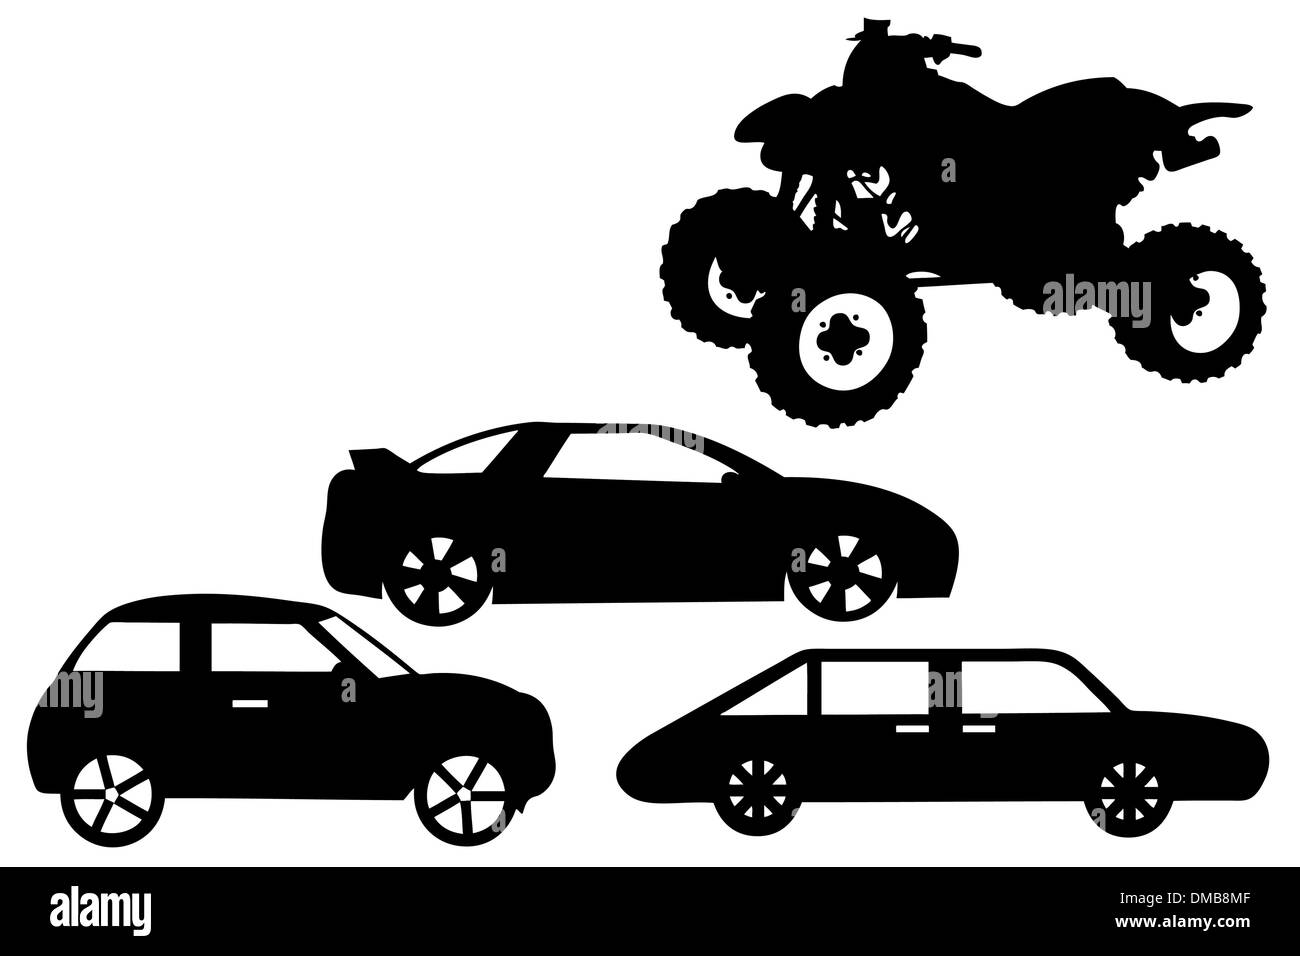 Collage With Different Automobiles - Stock Image